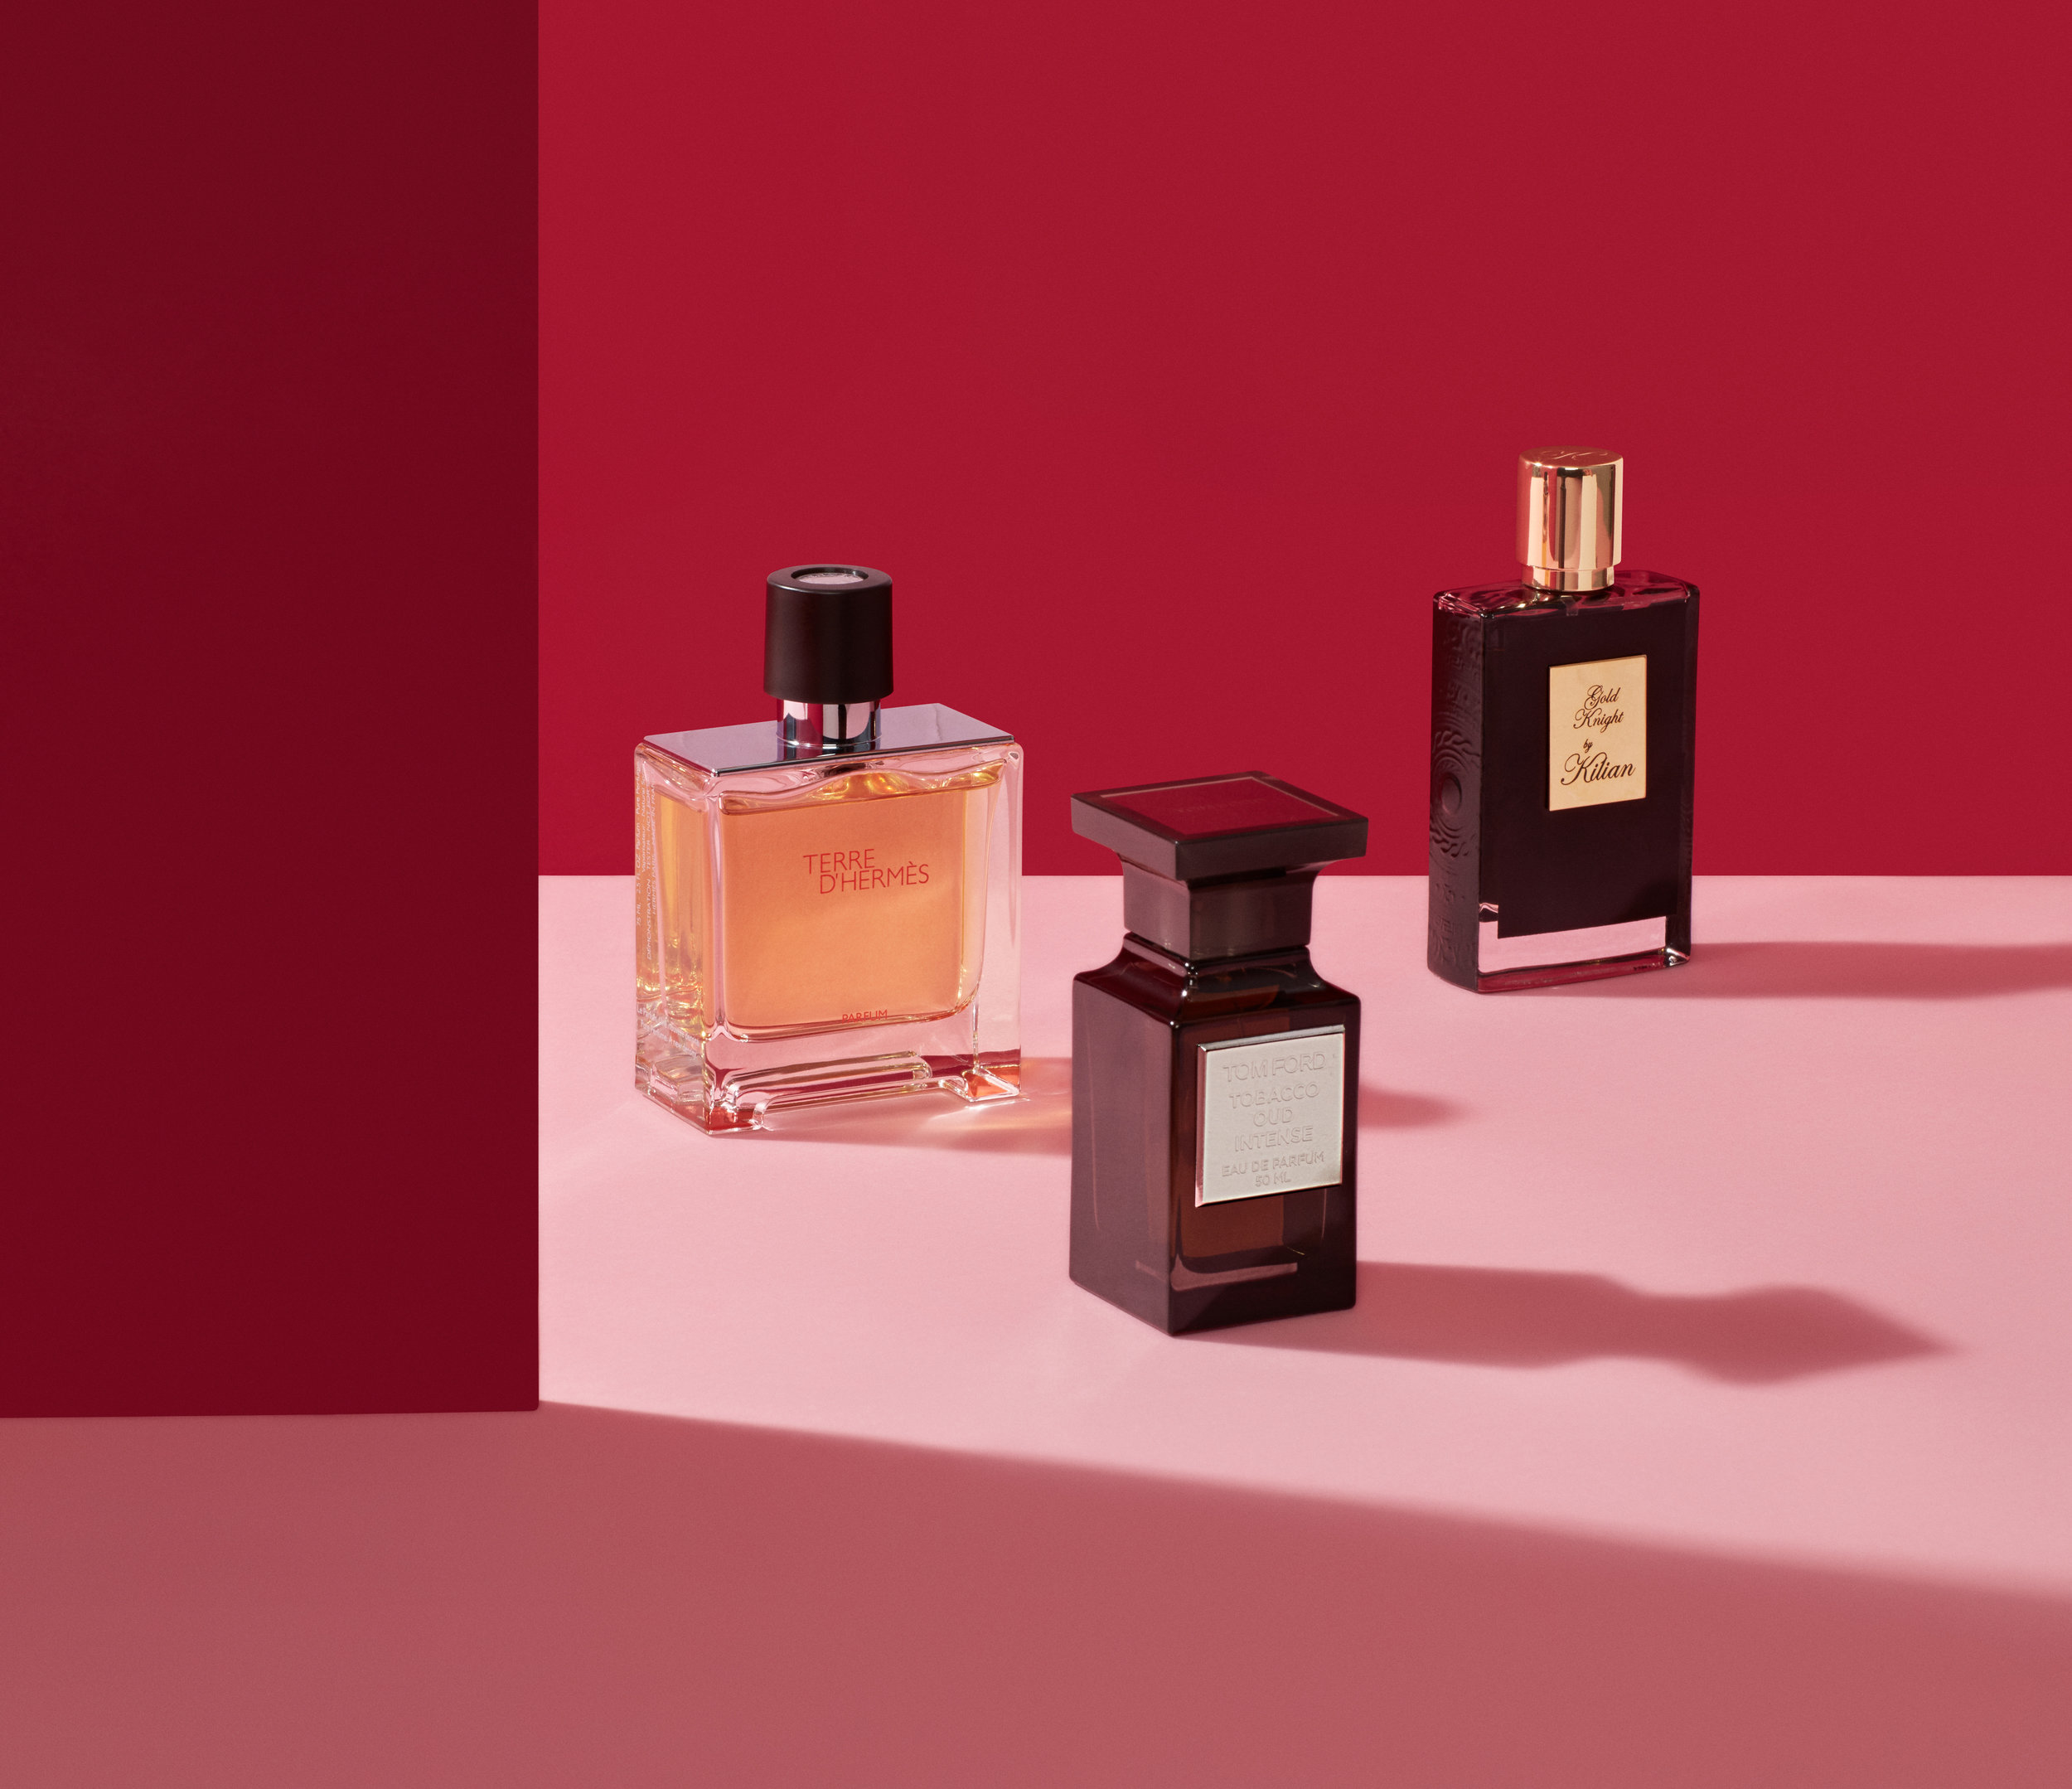 DCW_CONTENT_18_01_09_MB_Valentines-Day_01-Mens-Fragrance_060-LAYEREd_RGB.jpg